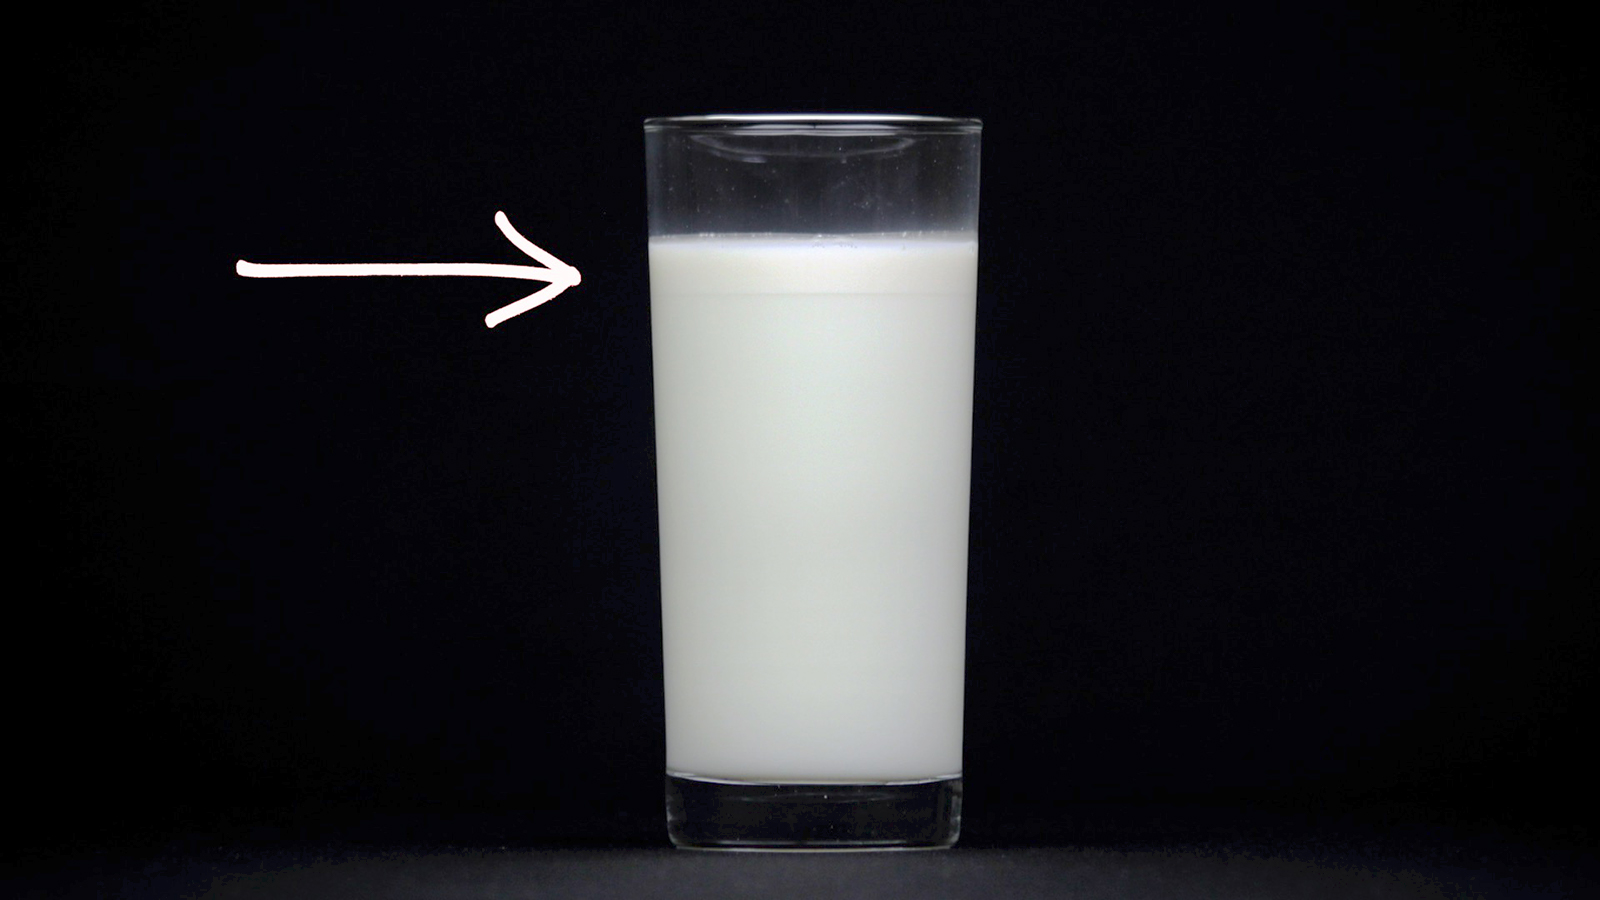 Glass of milk with cream on top.